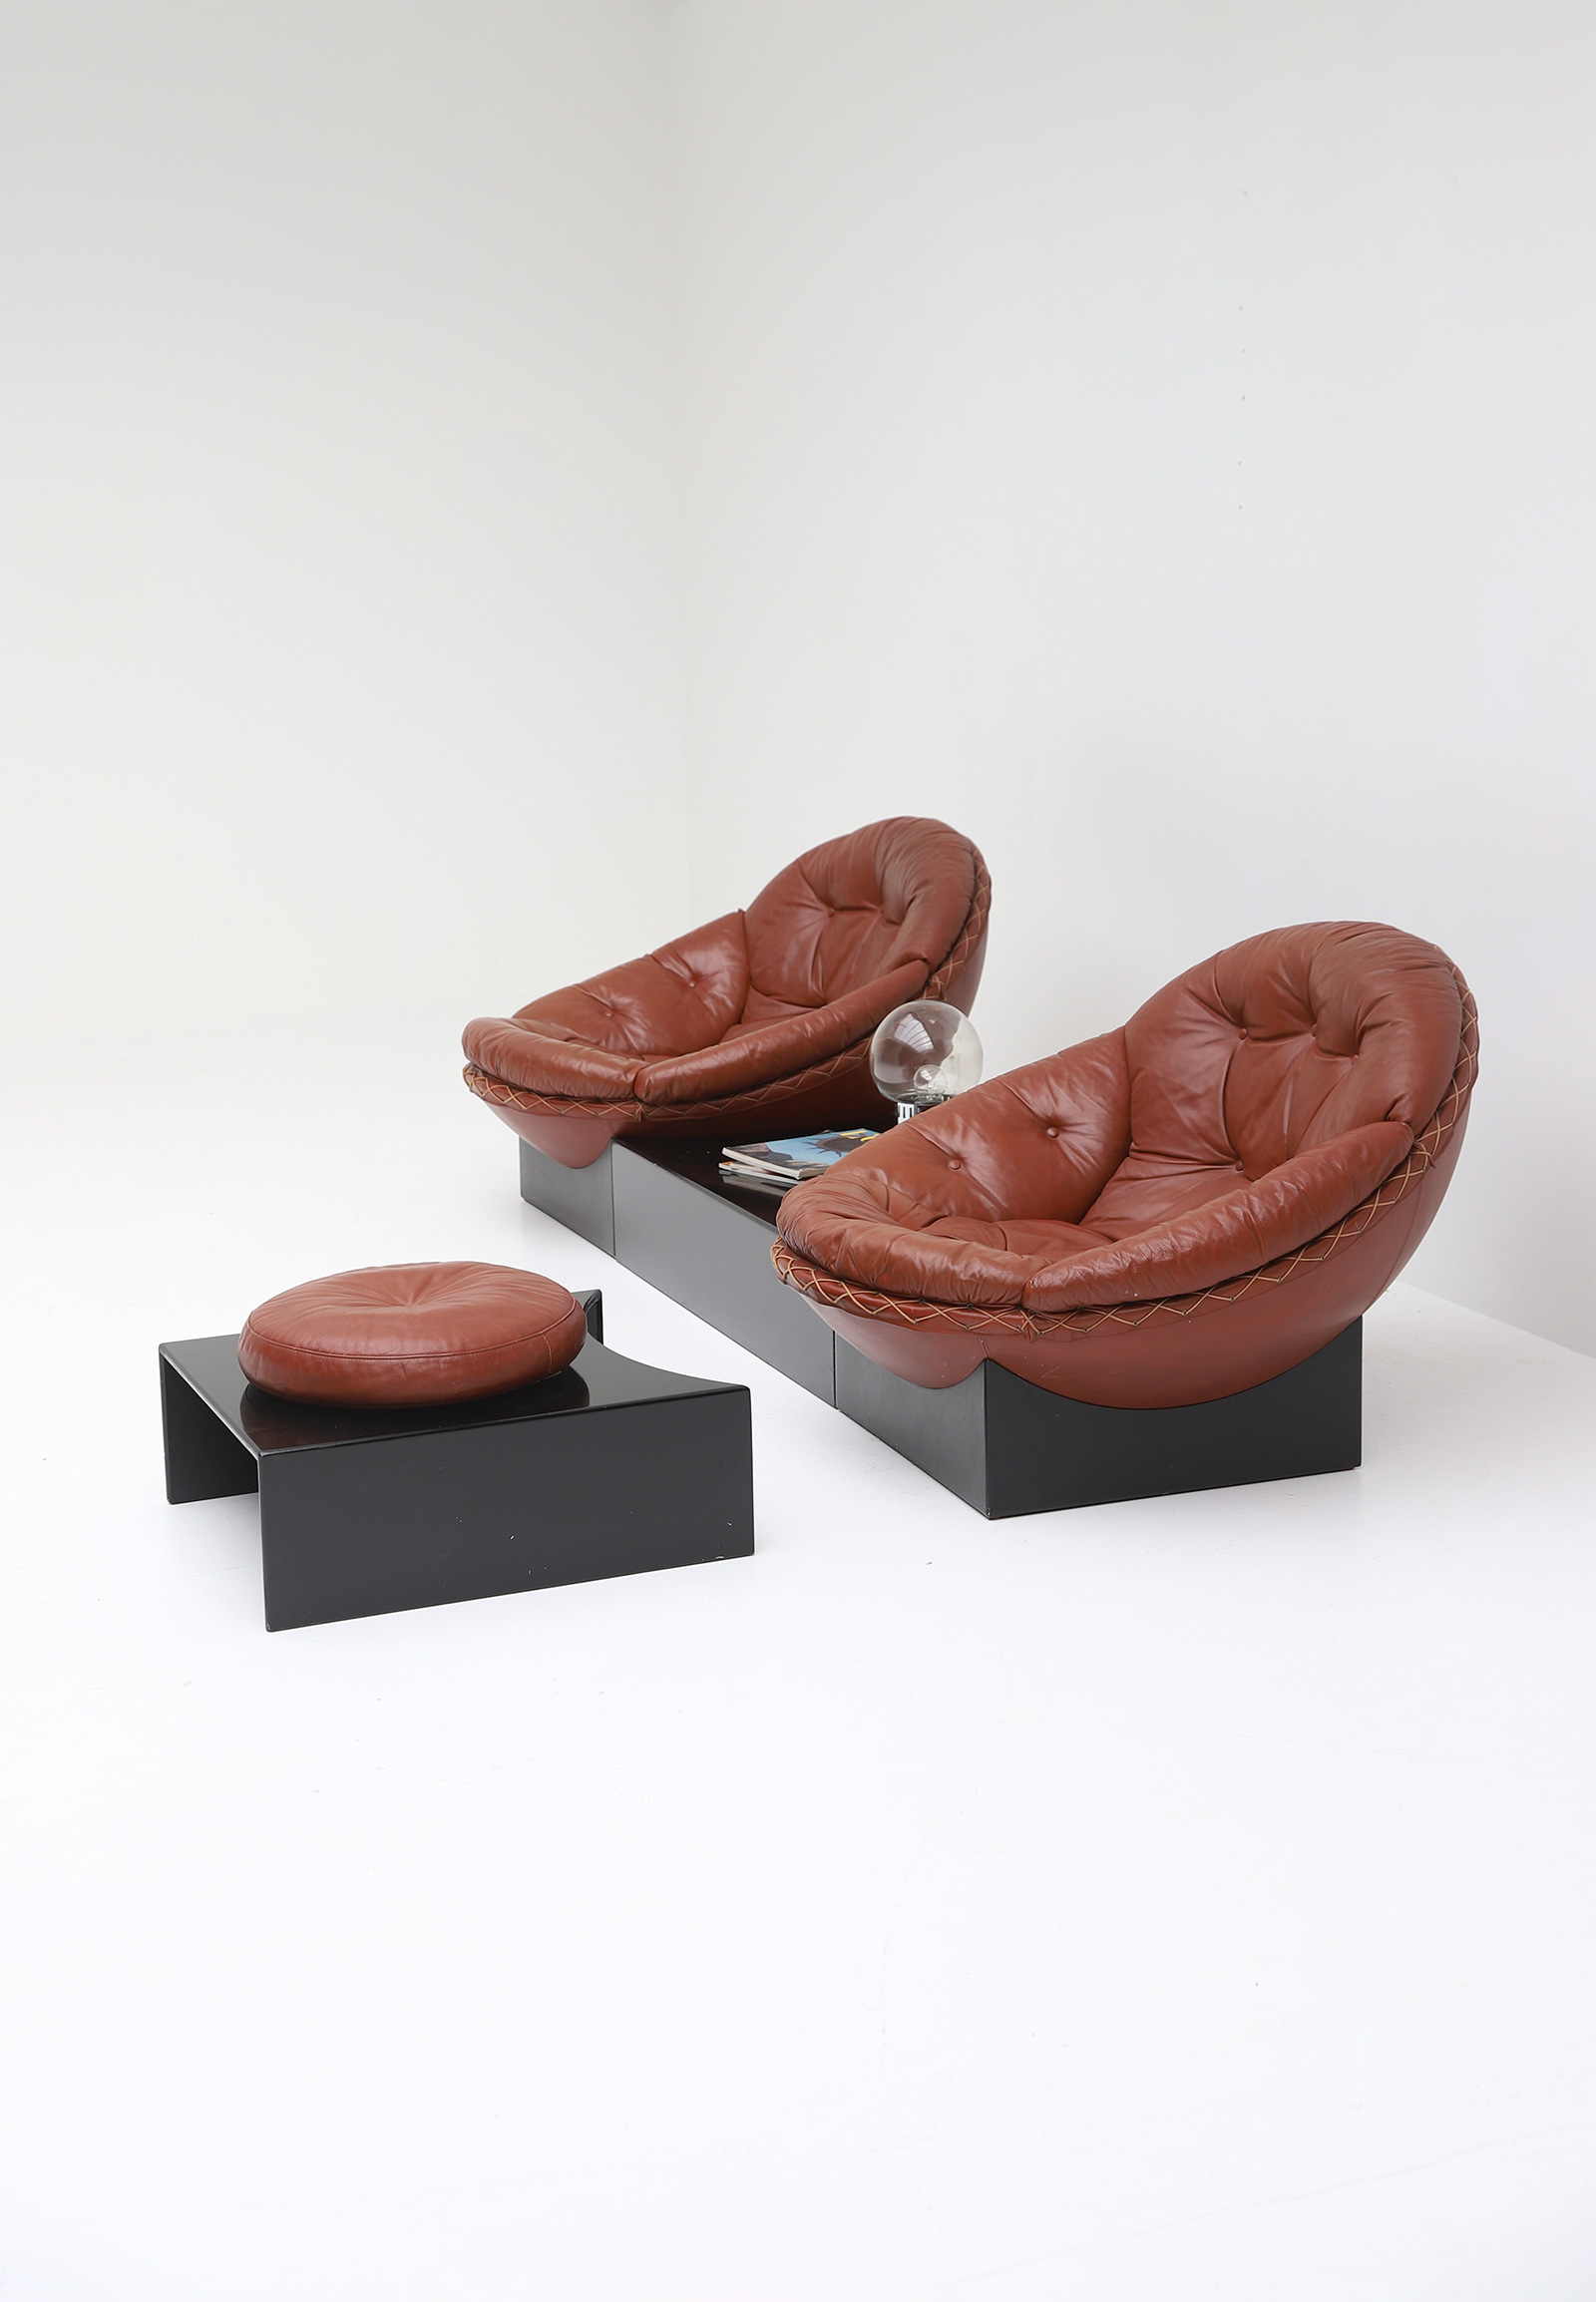 Leather Lounge Chairs by Illum Wikkelso for Ryesberg 1970simage 5